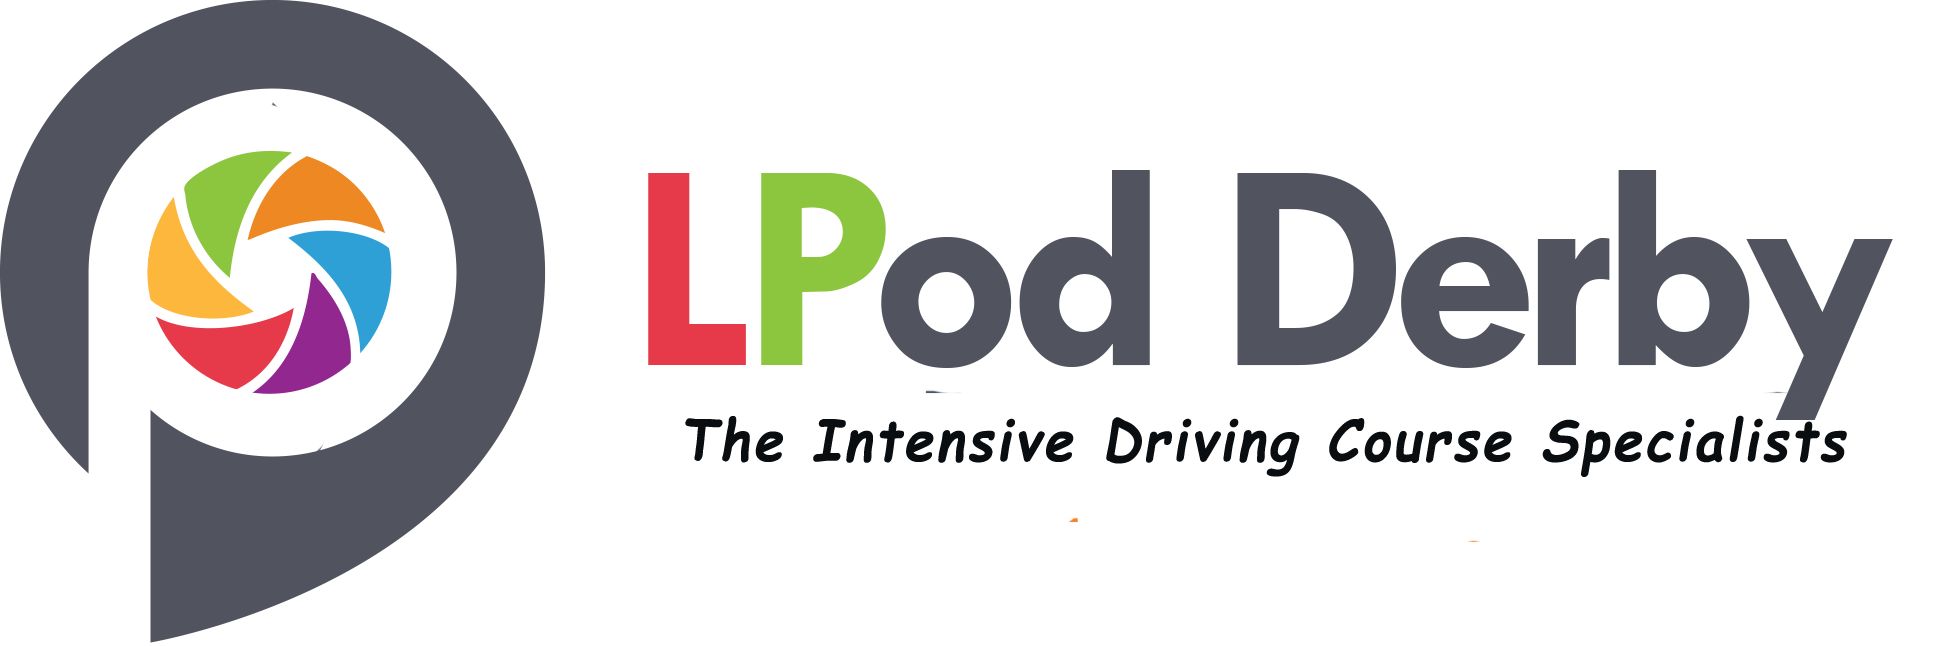 intensive driving courses derby, intensive driving lessons derby, one week driving courses derby, crash driving courses derby